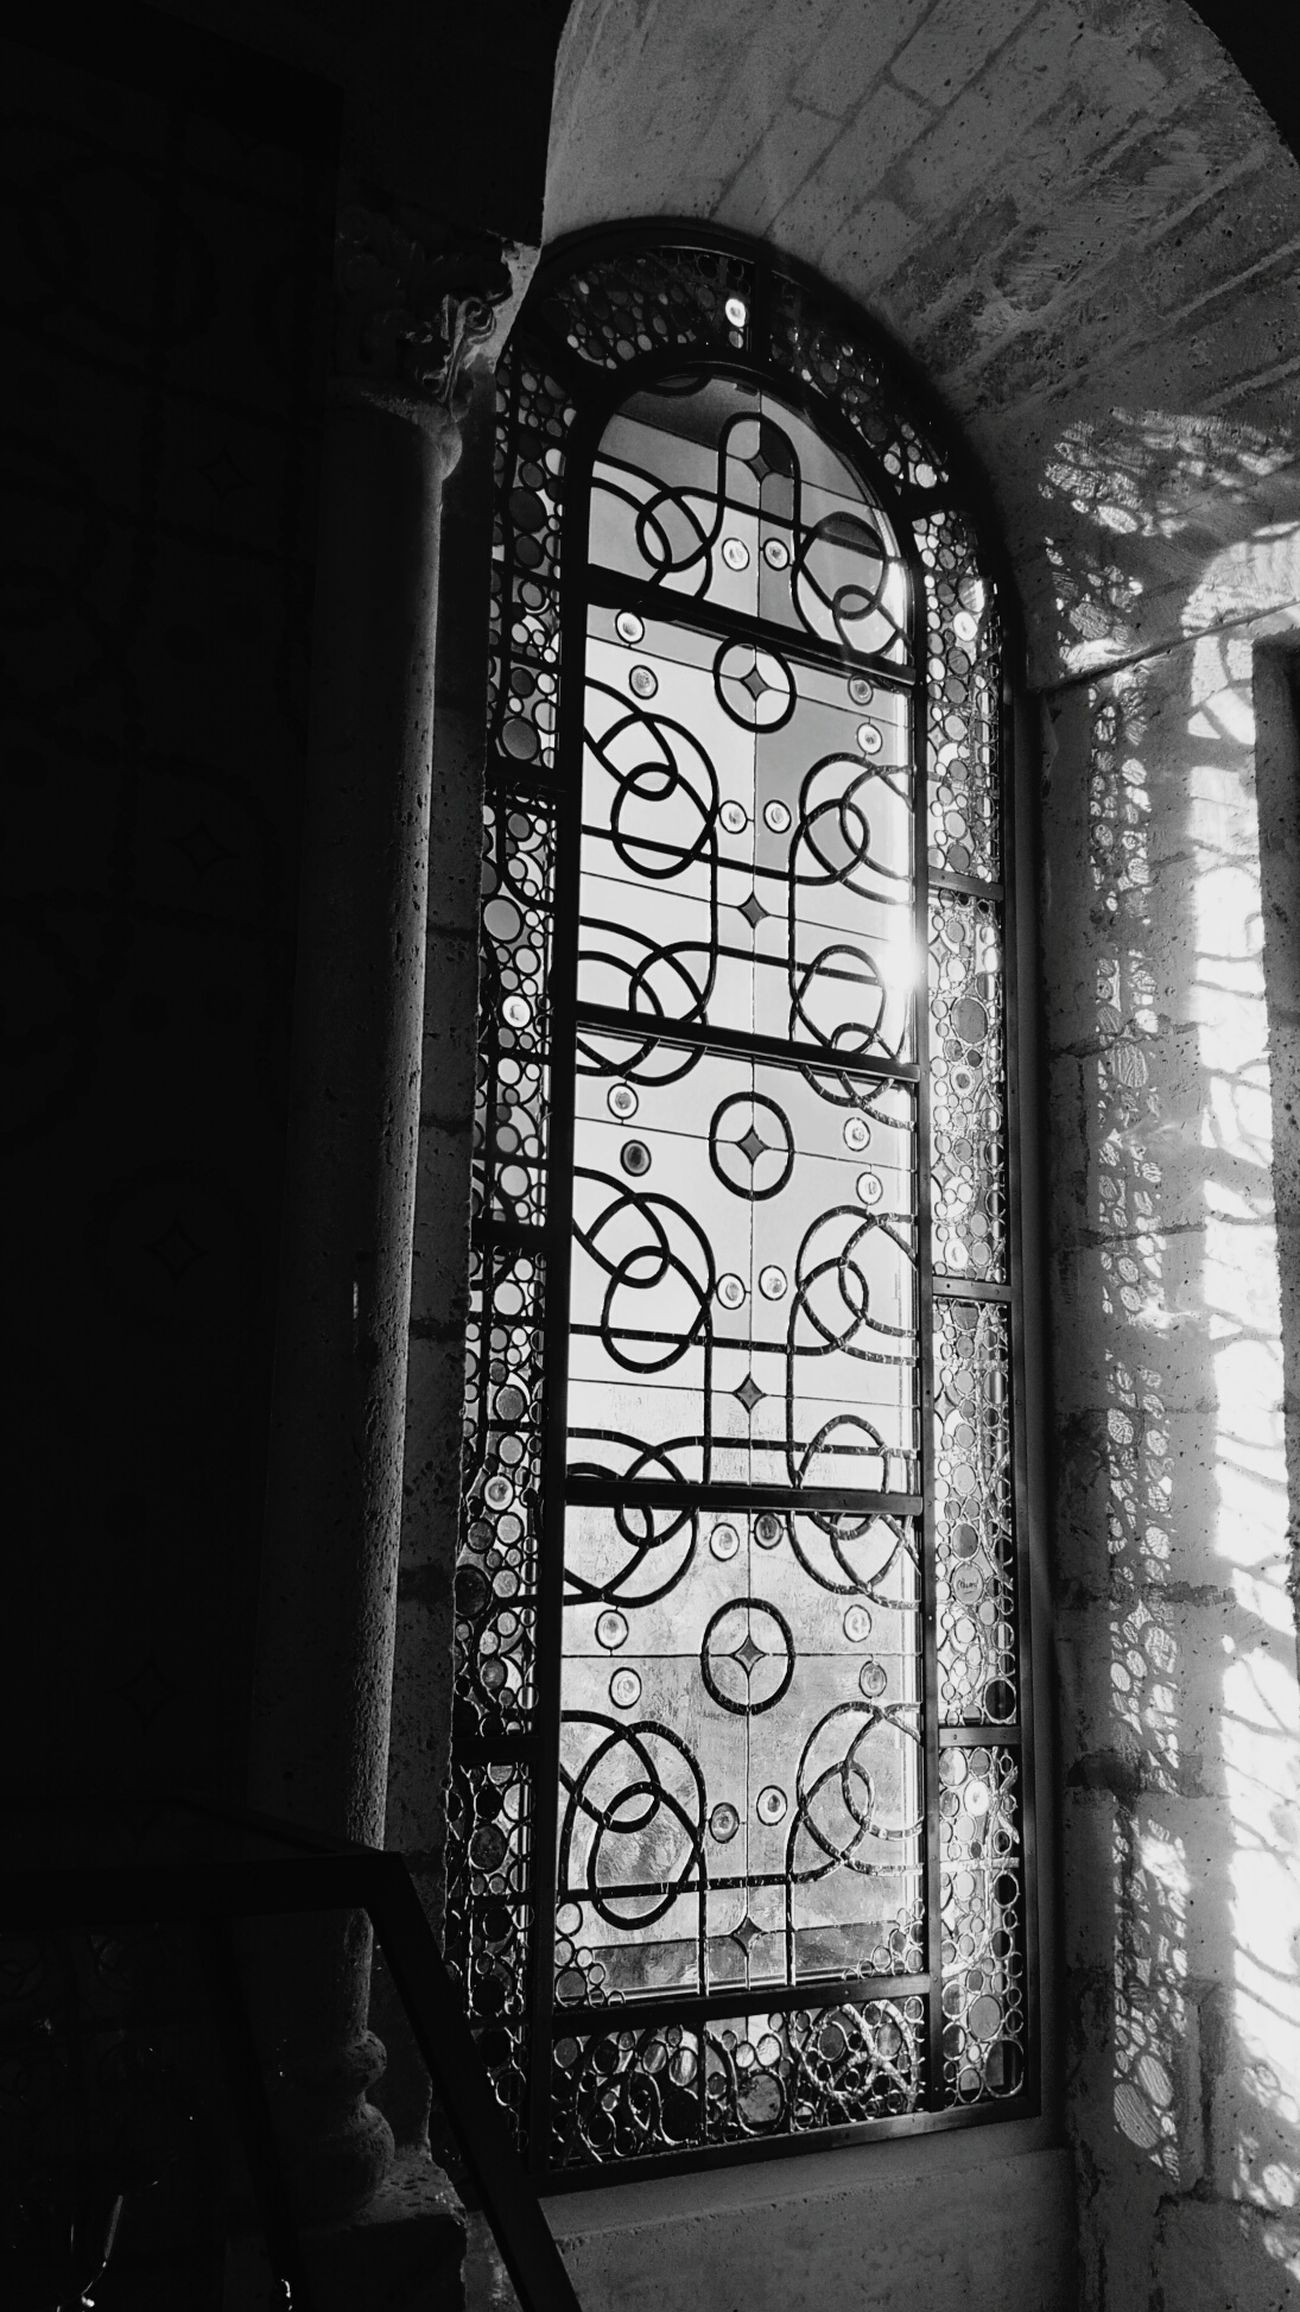 Stained Glass Window Stainedglass Lights And Shadows Lights B&w